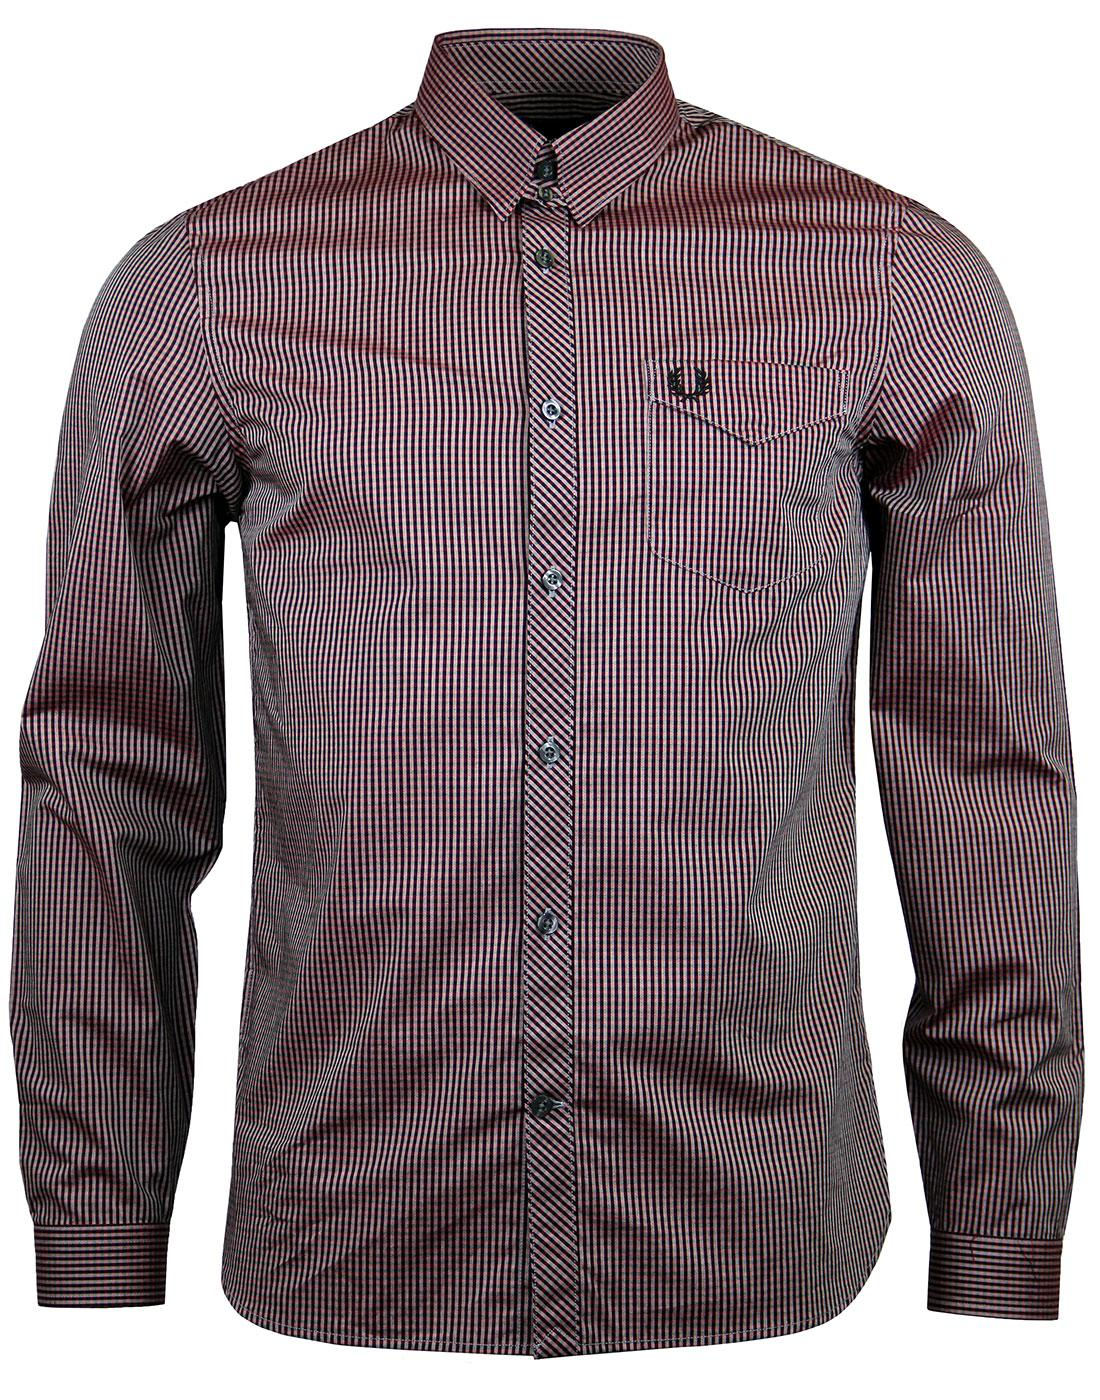 FRED PERRY M2552 Claret Tonic Gingham Shirt